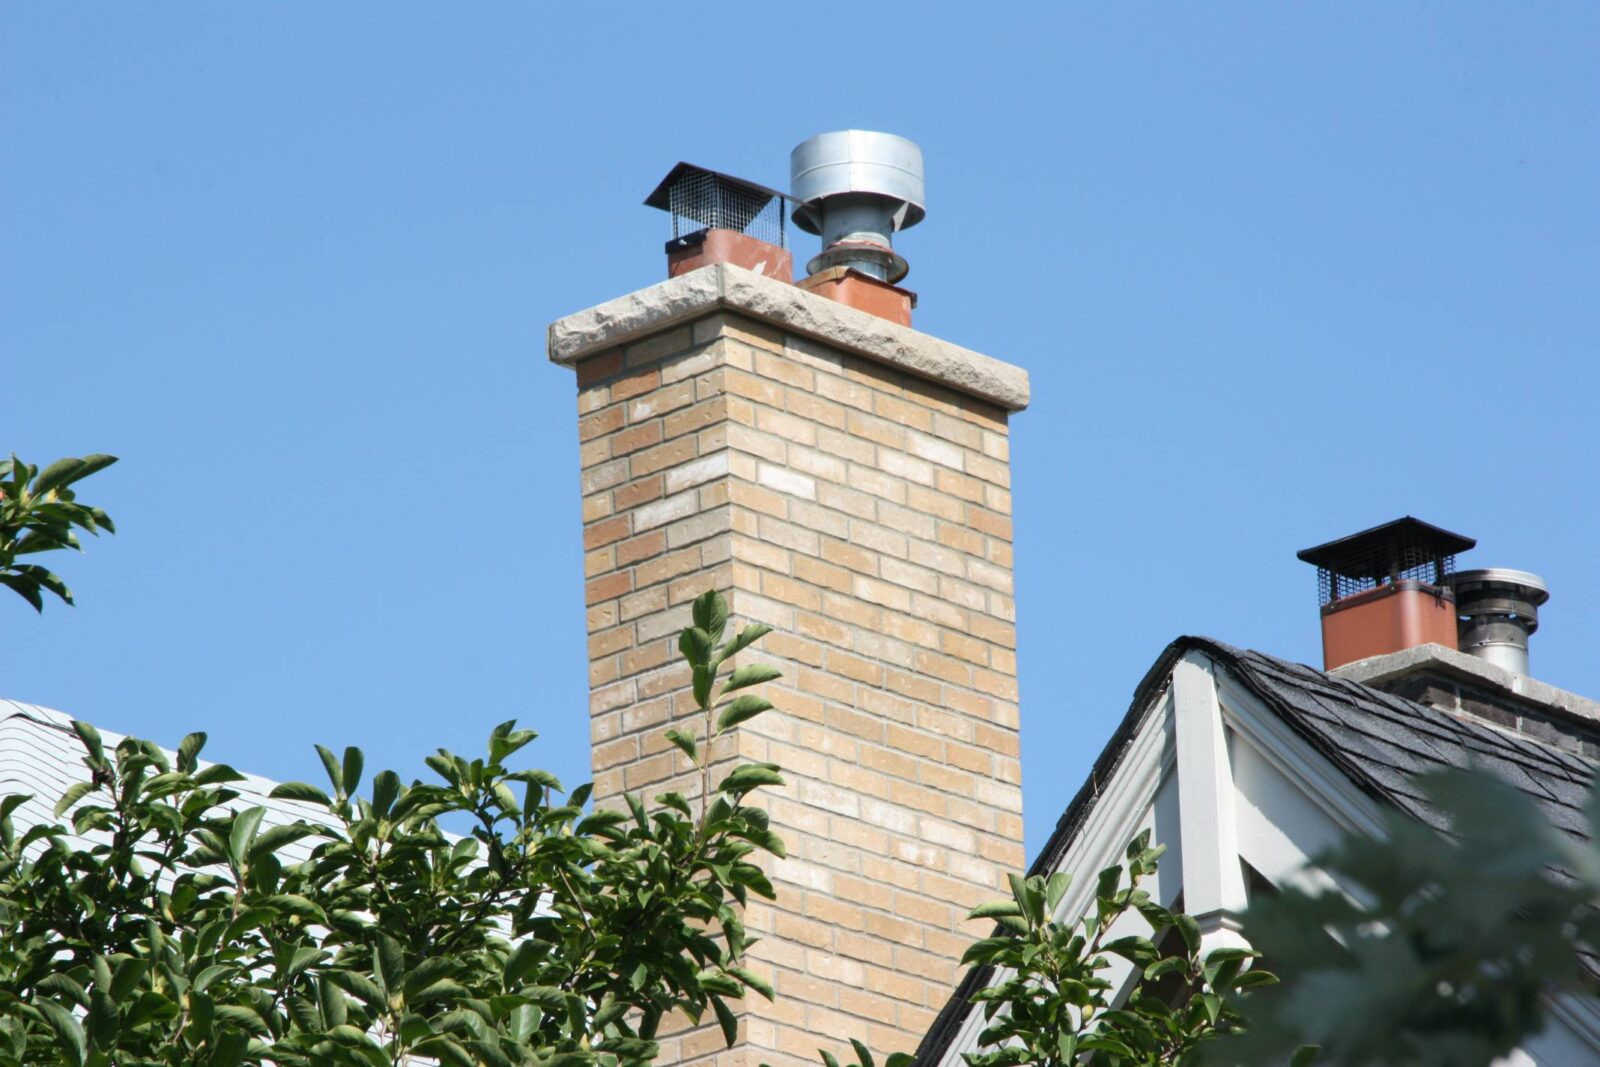 chimney cleaning toronto